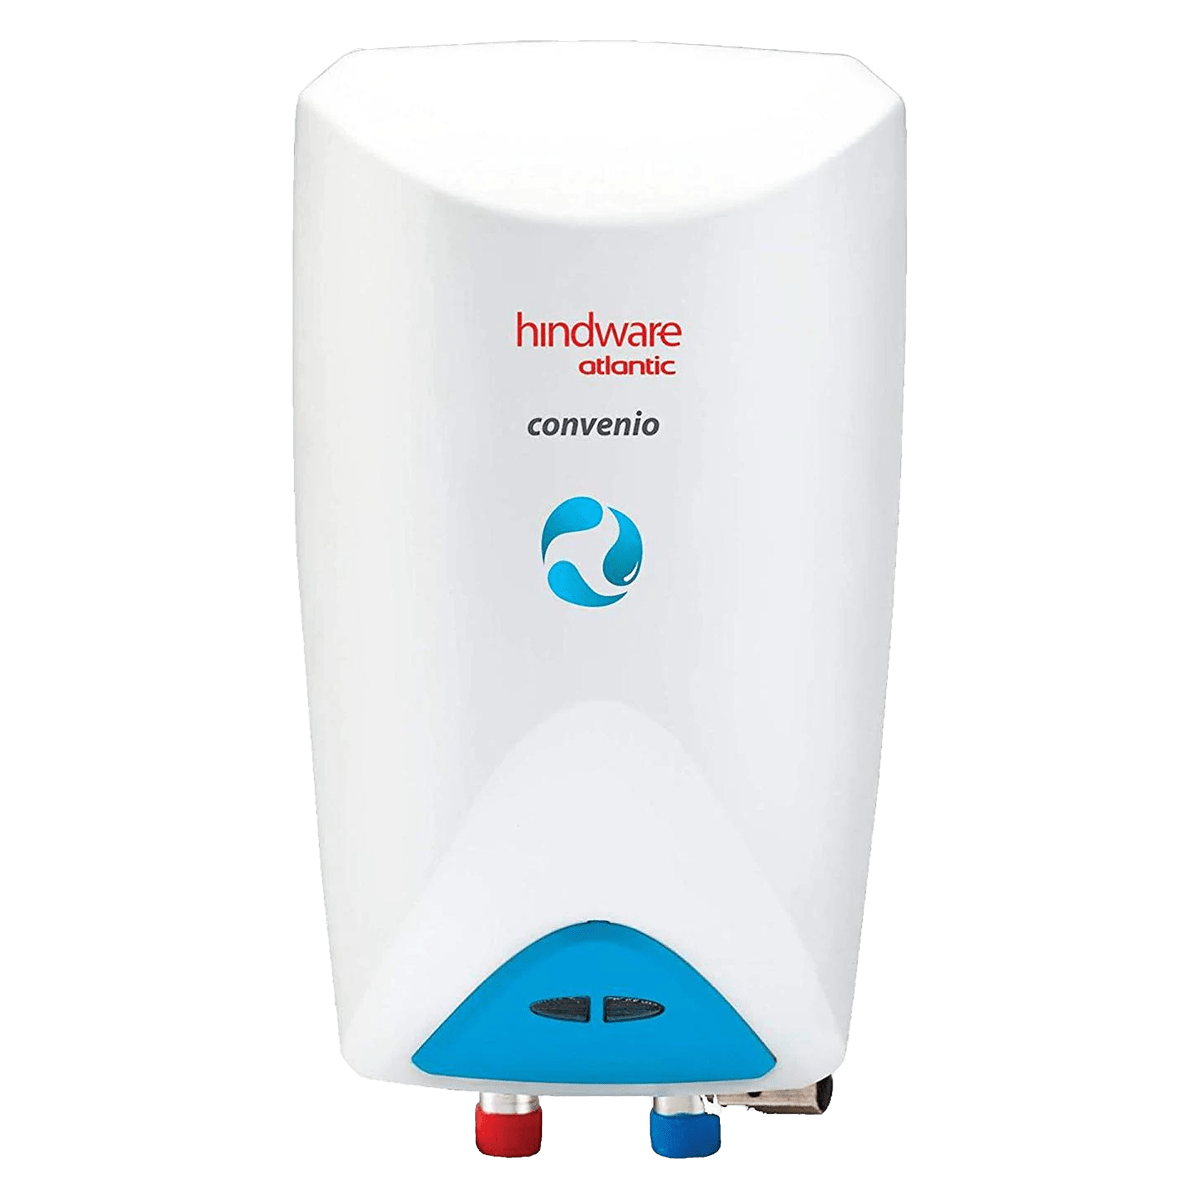 Hindware Atlantic Convenio 3 Litres 5 Star Rating Instant Water Heater (3000 Watts, HIWHCO3WI3VSS, White)